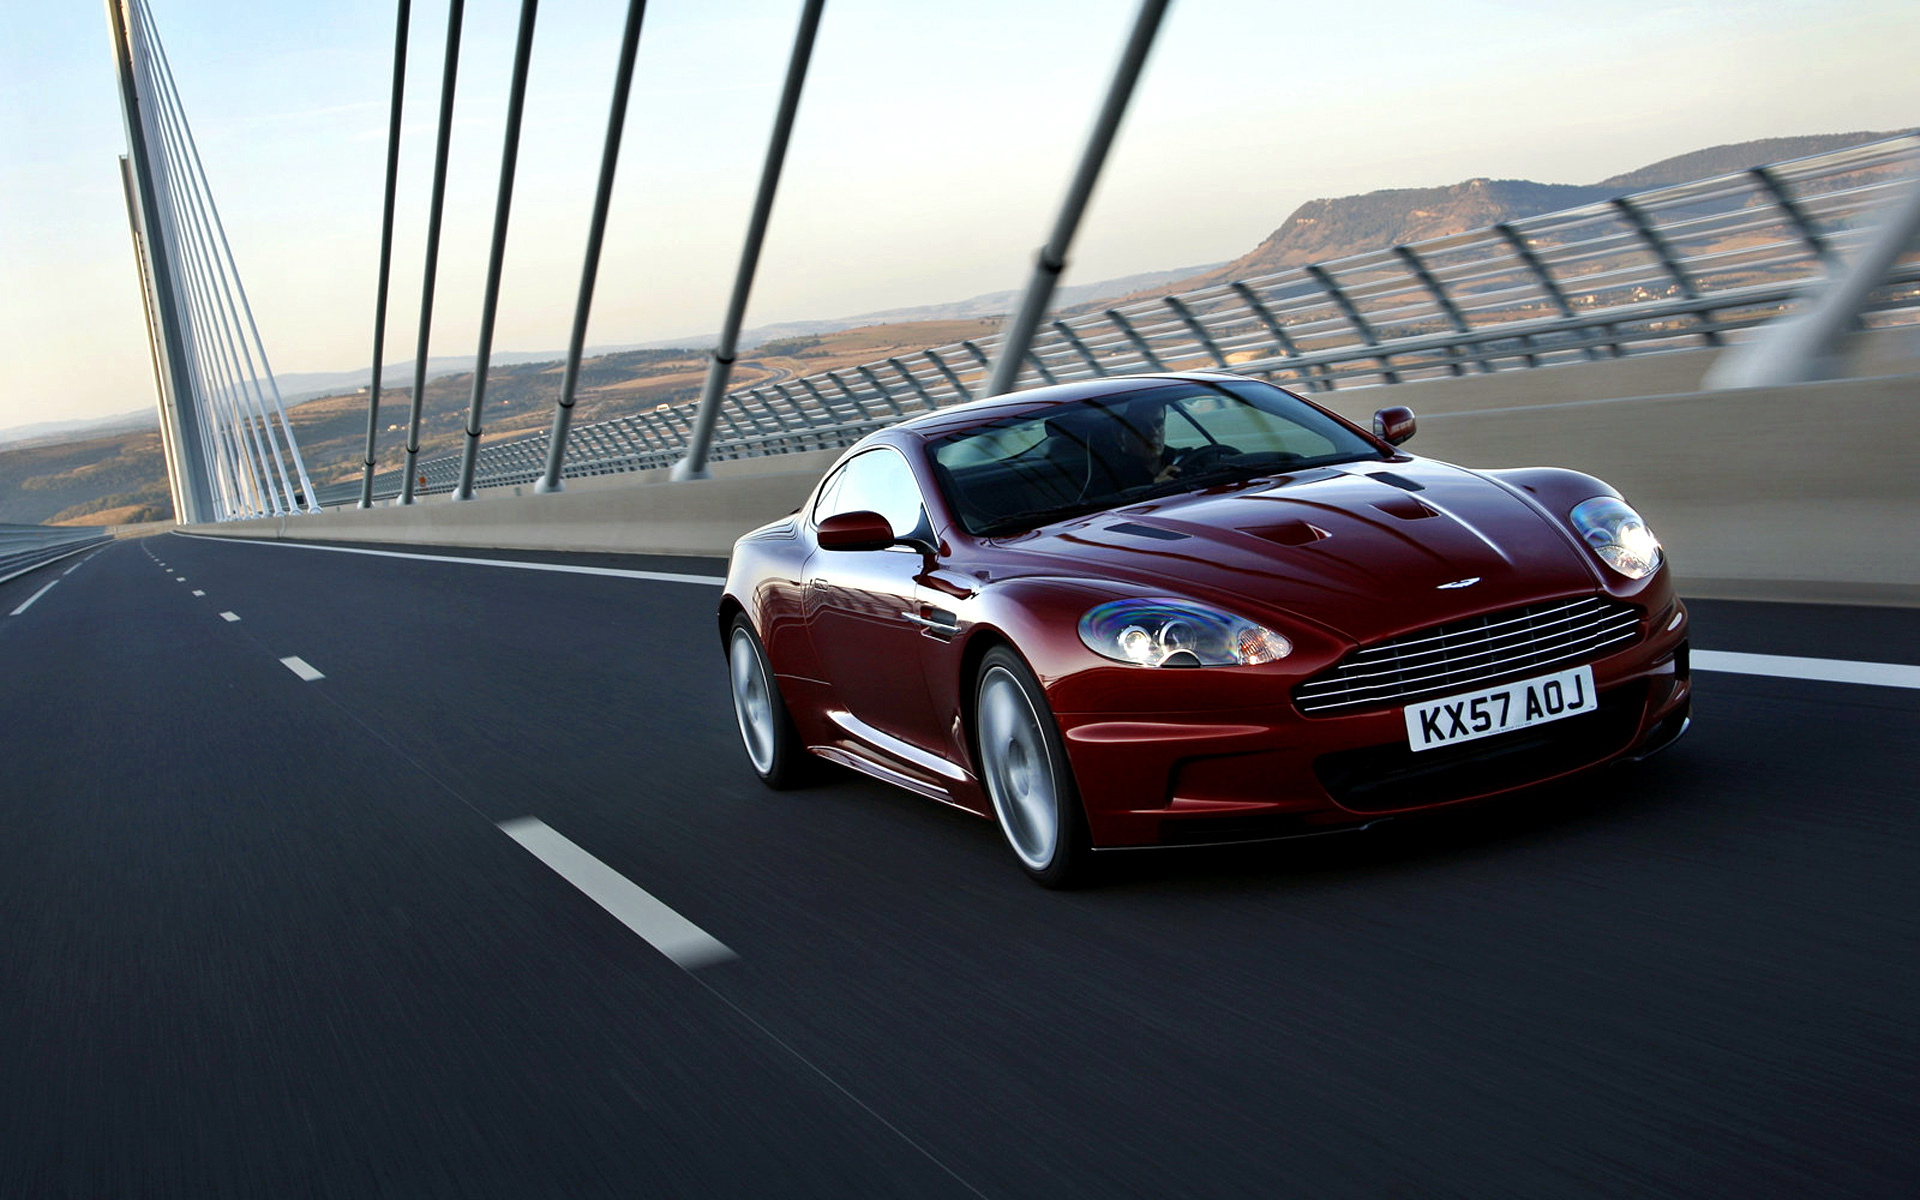 aston martin dbs full hd wallpaper and background image | 1920x1200